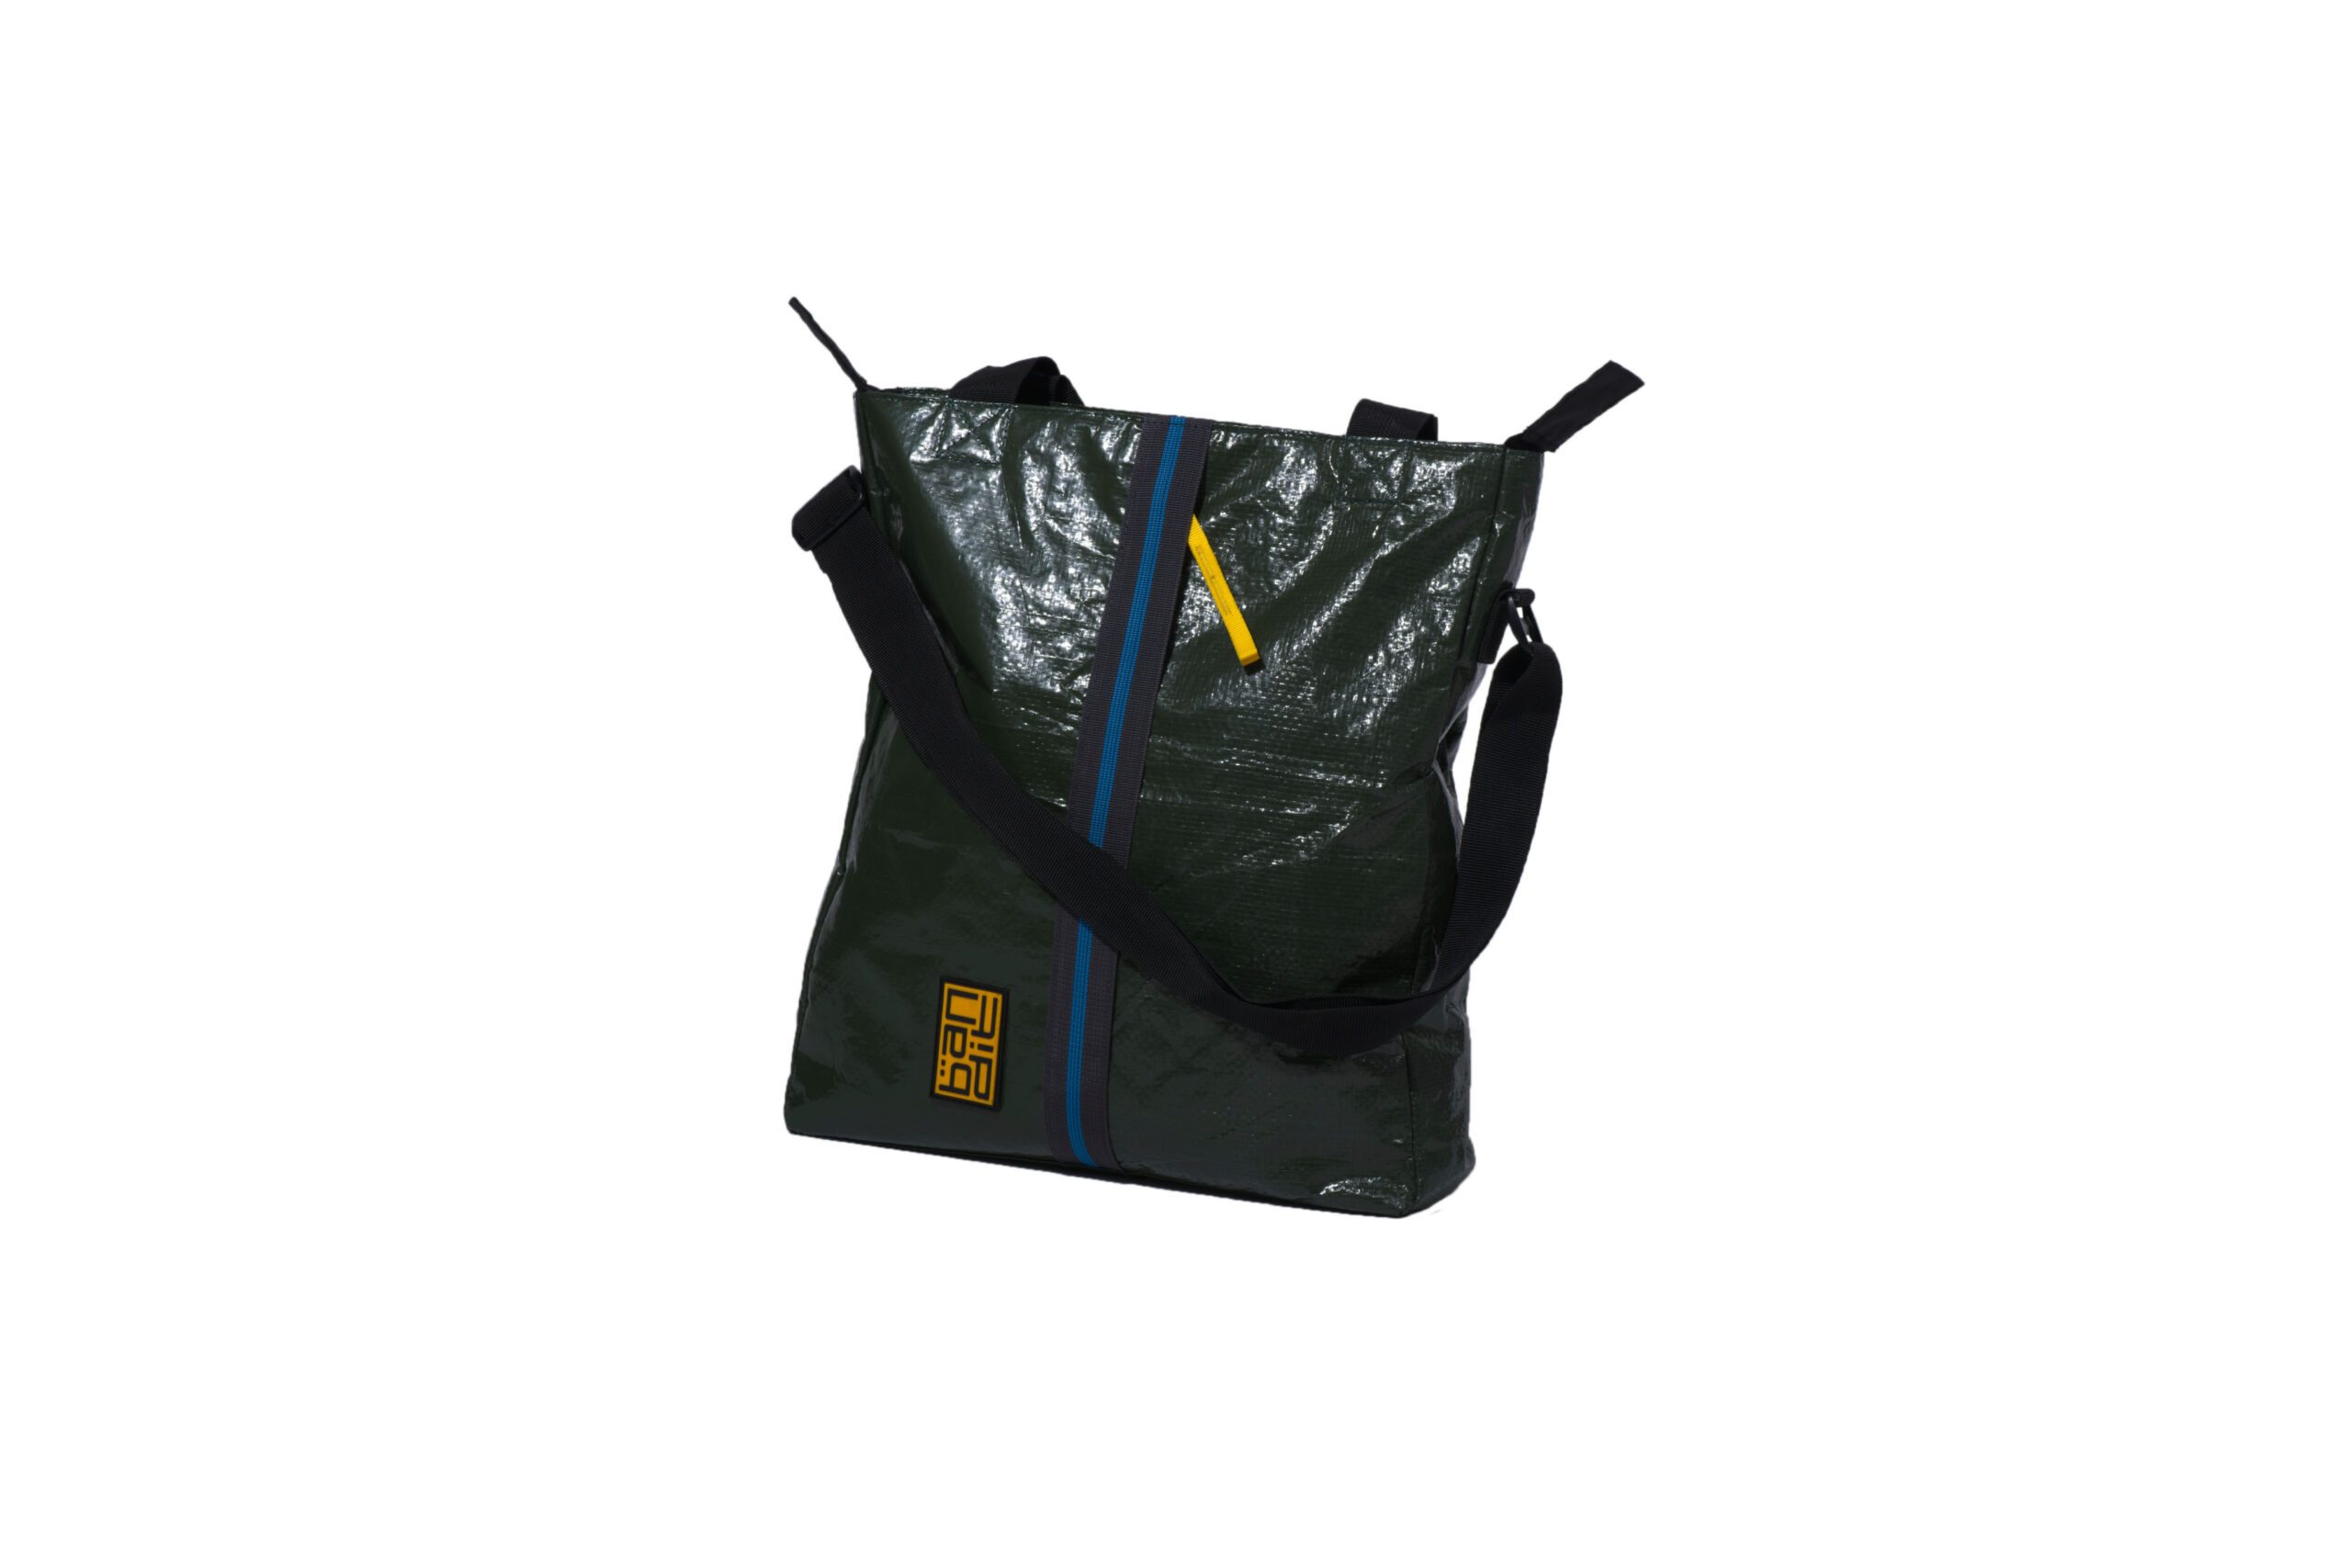 A unisex tote, made from upcycled tarpaulin, water-resistant, and weighing 400 gms, this tote can hold up to 6kg. It also has a separate sleeve for a 13-inch tablet. With a front and rear pockets and a crossbody strap, it can be carried in multiple ways.